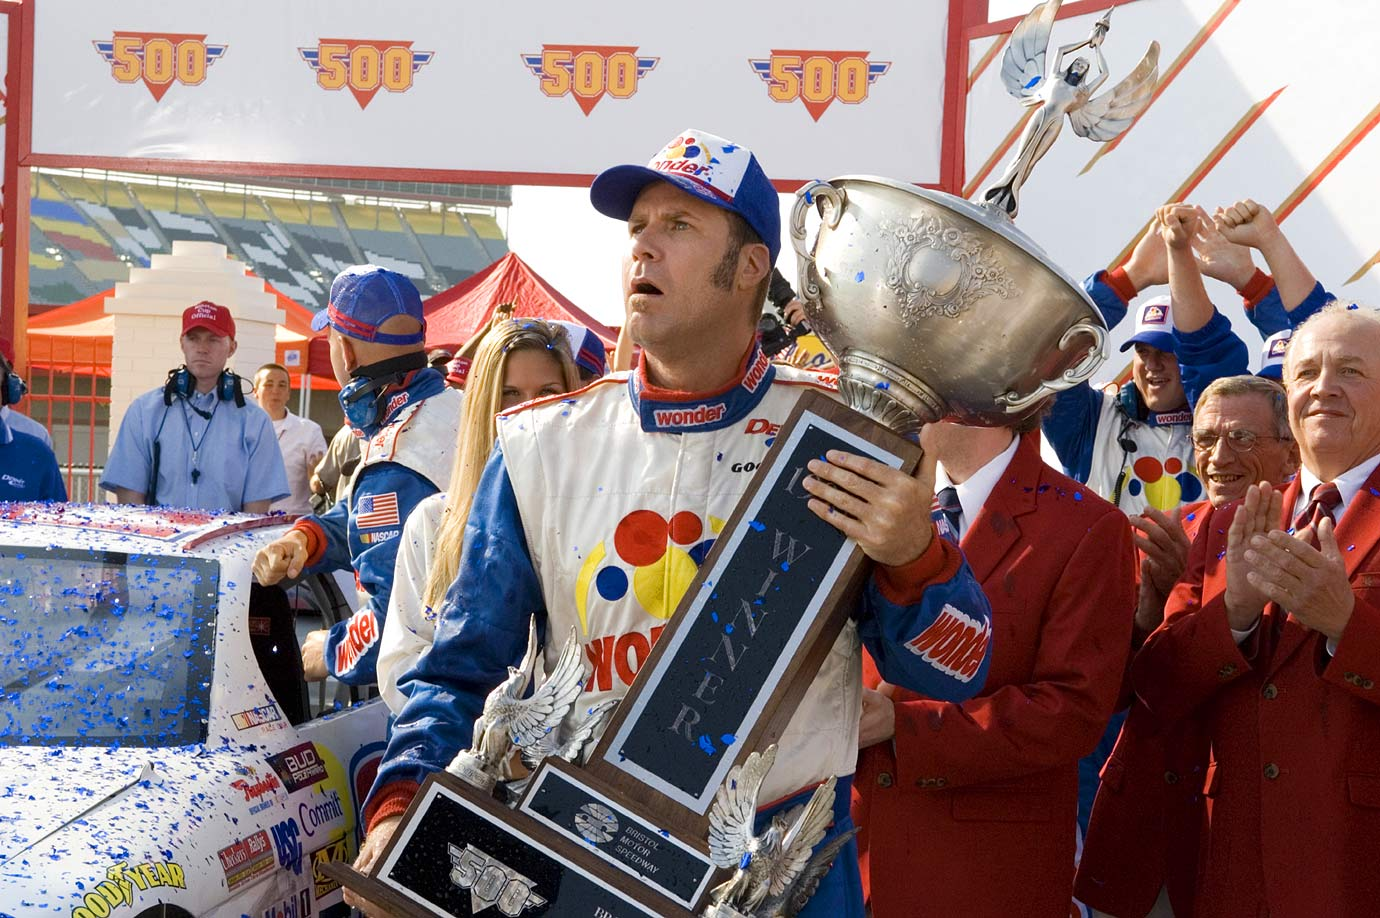 NASCAR driver Ricky Bobby, played by Will Ferrell, holds a trophy in a scene from ''Talladega Nights: The Ballad of Ricky Bobby'' filmed on Oct. 20, 2005.